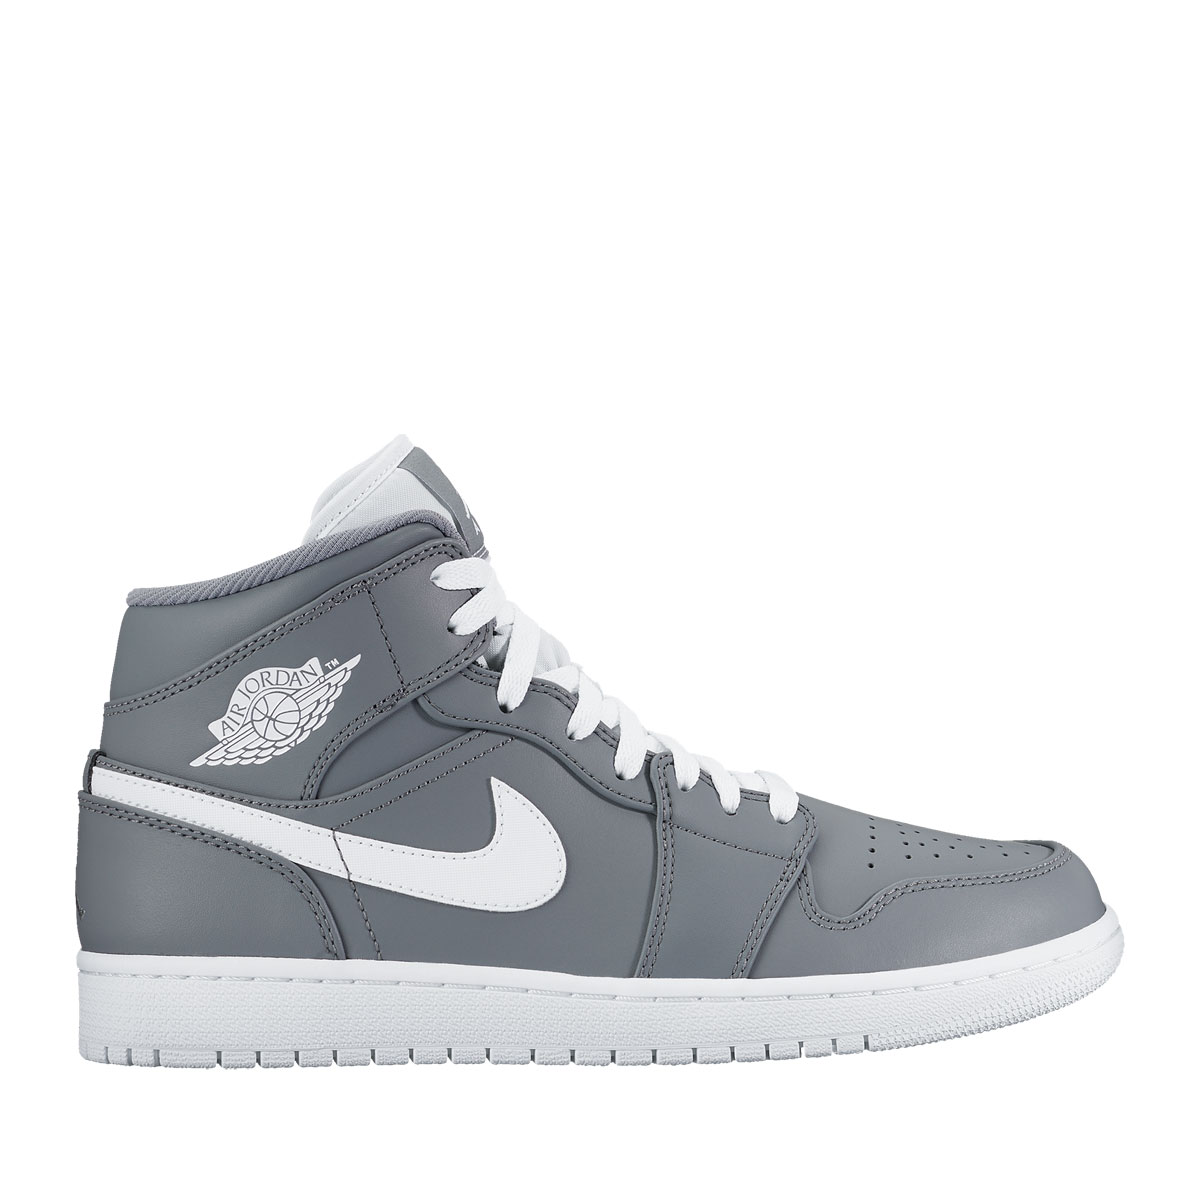 online store 32492 2eb8d MID cut version of Air Jordan 1 who it was first sig nature shoes of Michael  Jordan, and became the first model of the Air Jordan series.